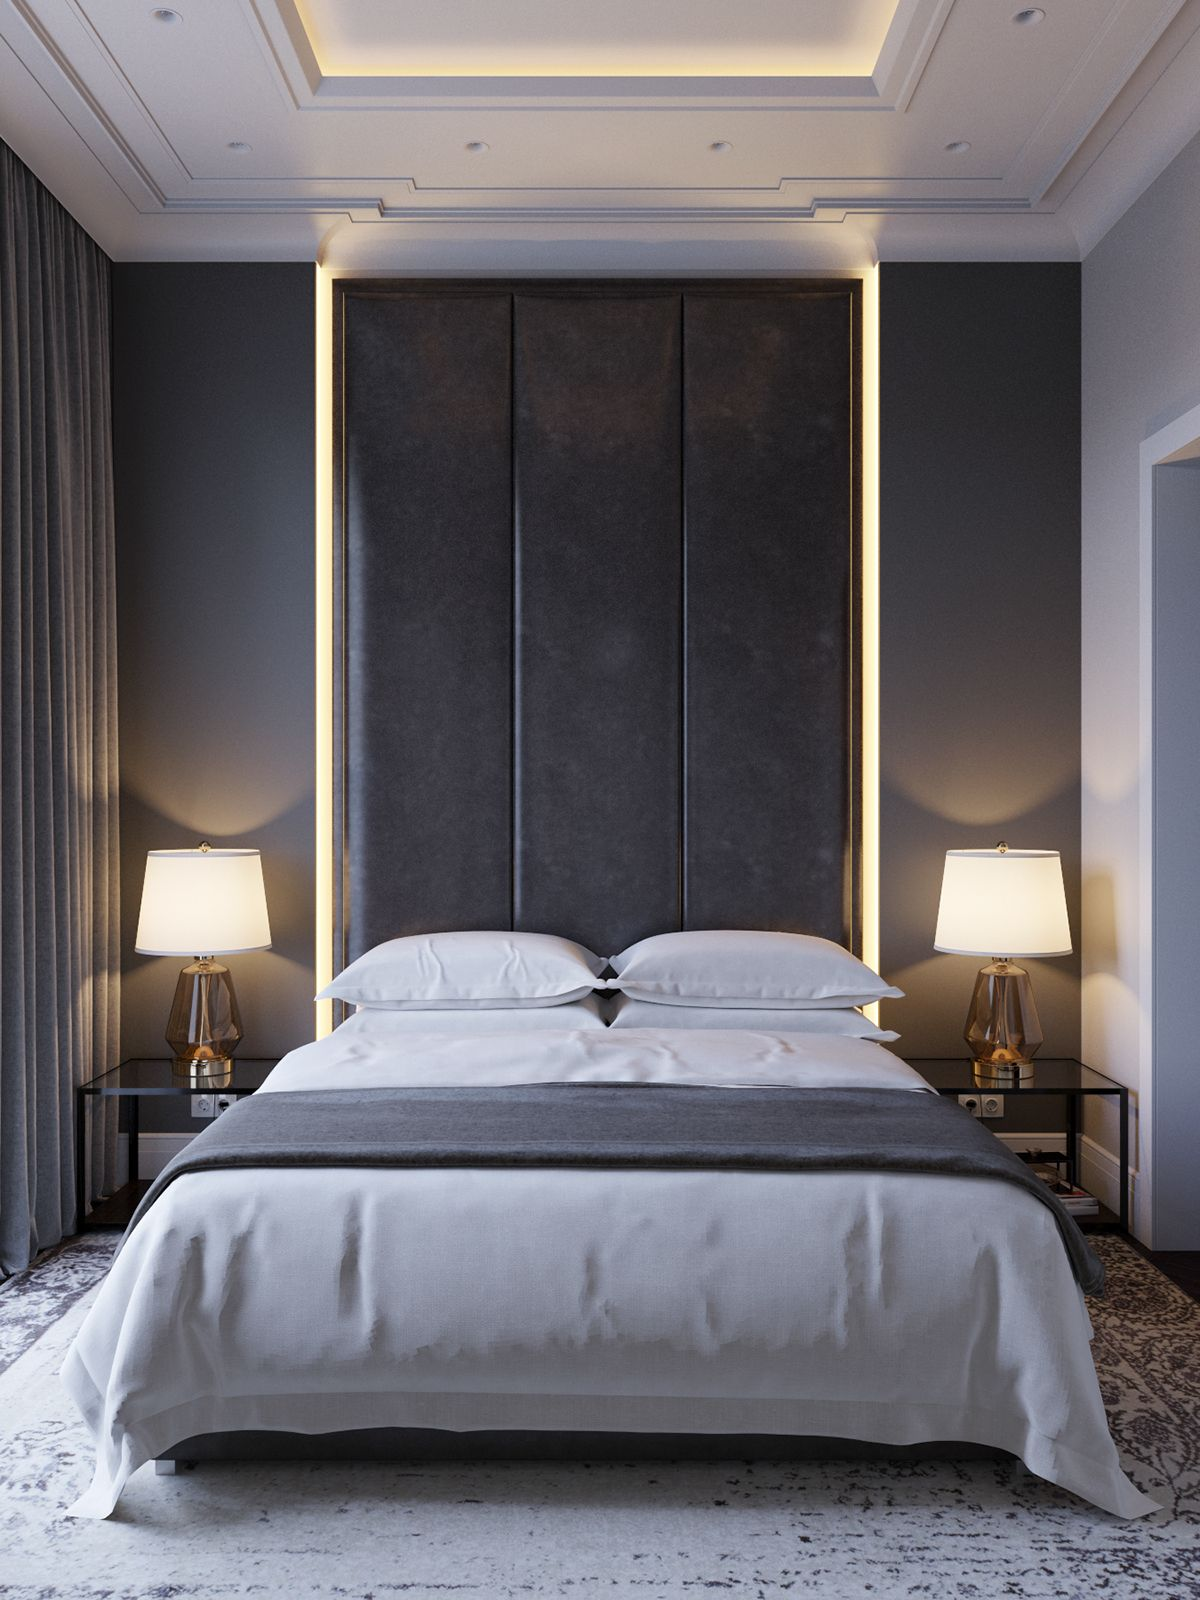 Modern Bedroom on Behance | Quartos estilo hotel, Quarto ...